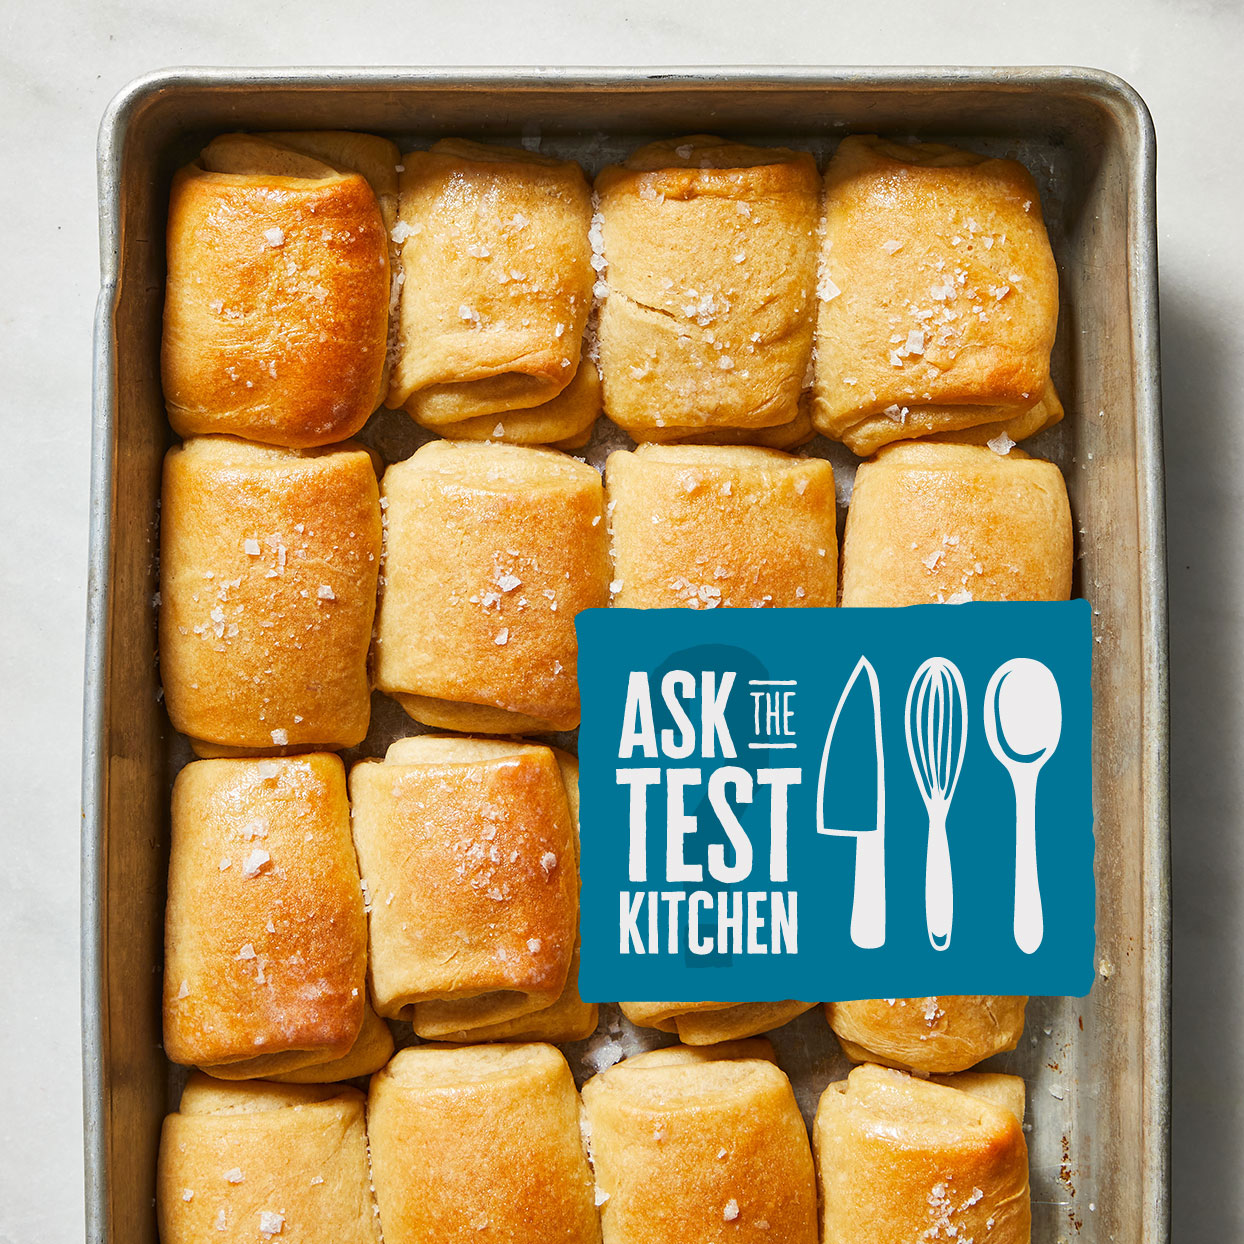 A pan of Parker House Rolls with an Ask the Test Kitchen Logo